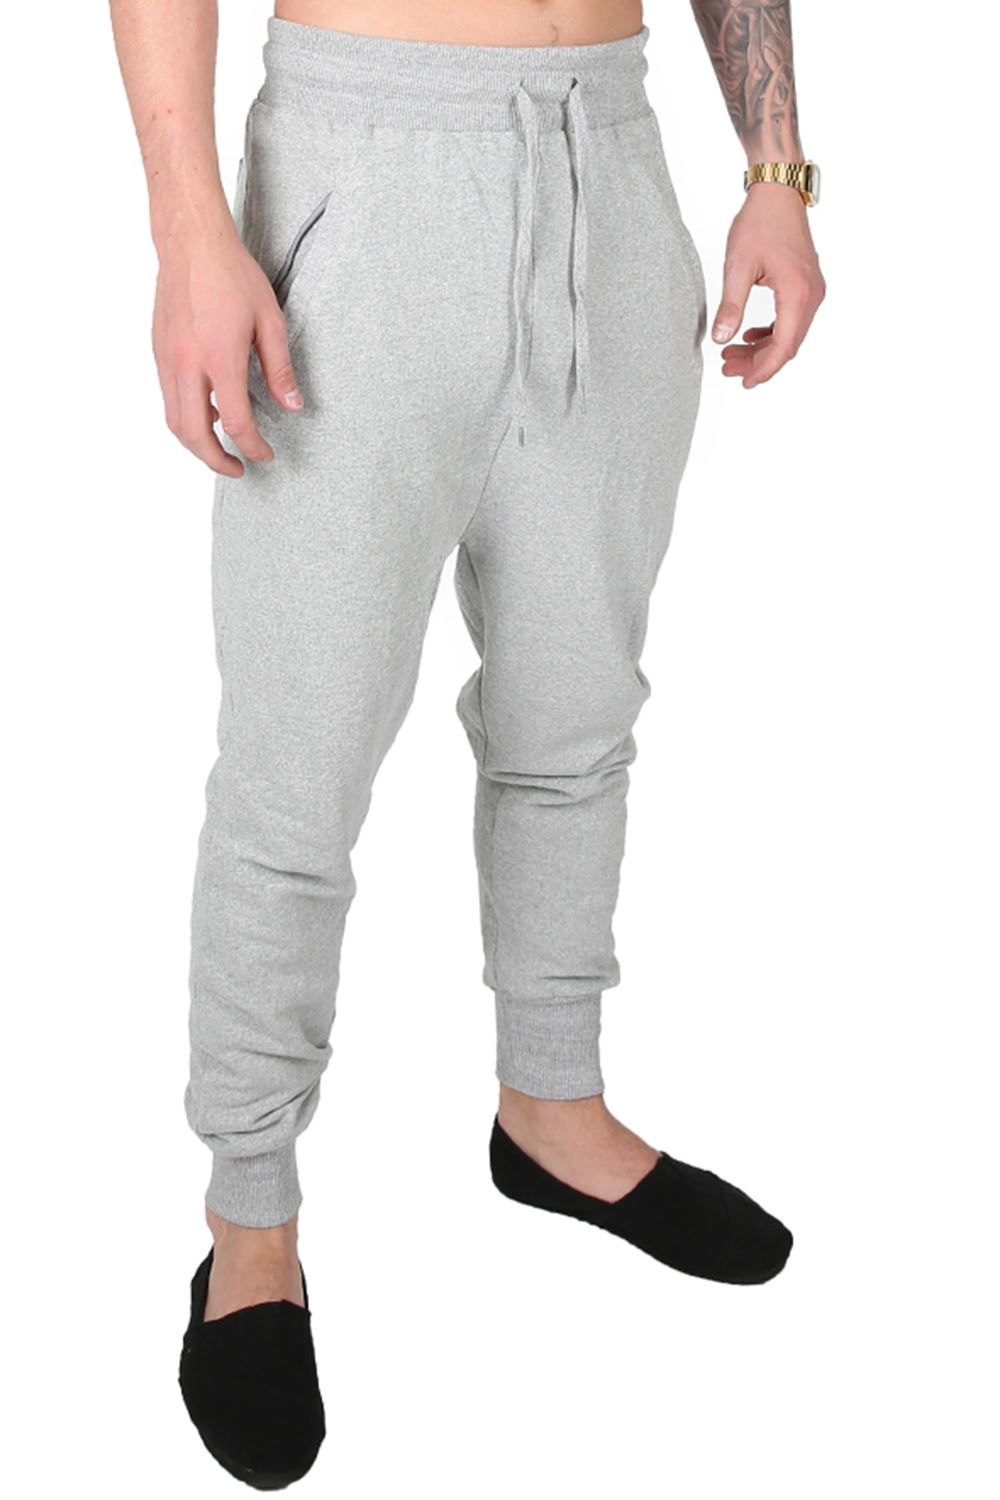 on sale online fine quality luxury aesthetic Details about Mens Branded Slim Fit Gym Joggers Double Zip Bottoms Stretchy  Trousers Pants